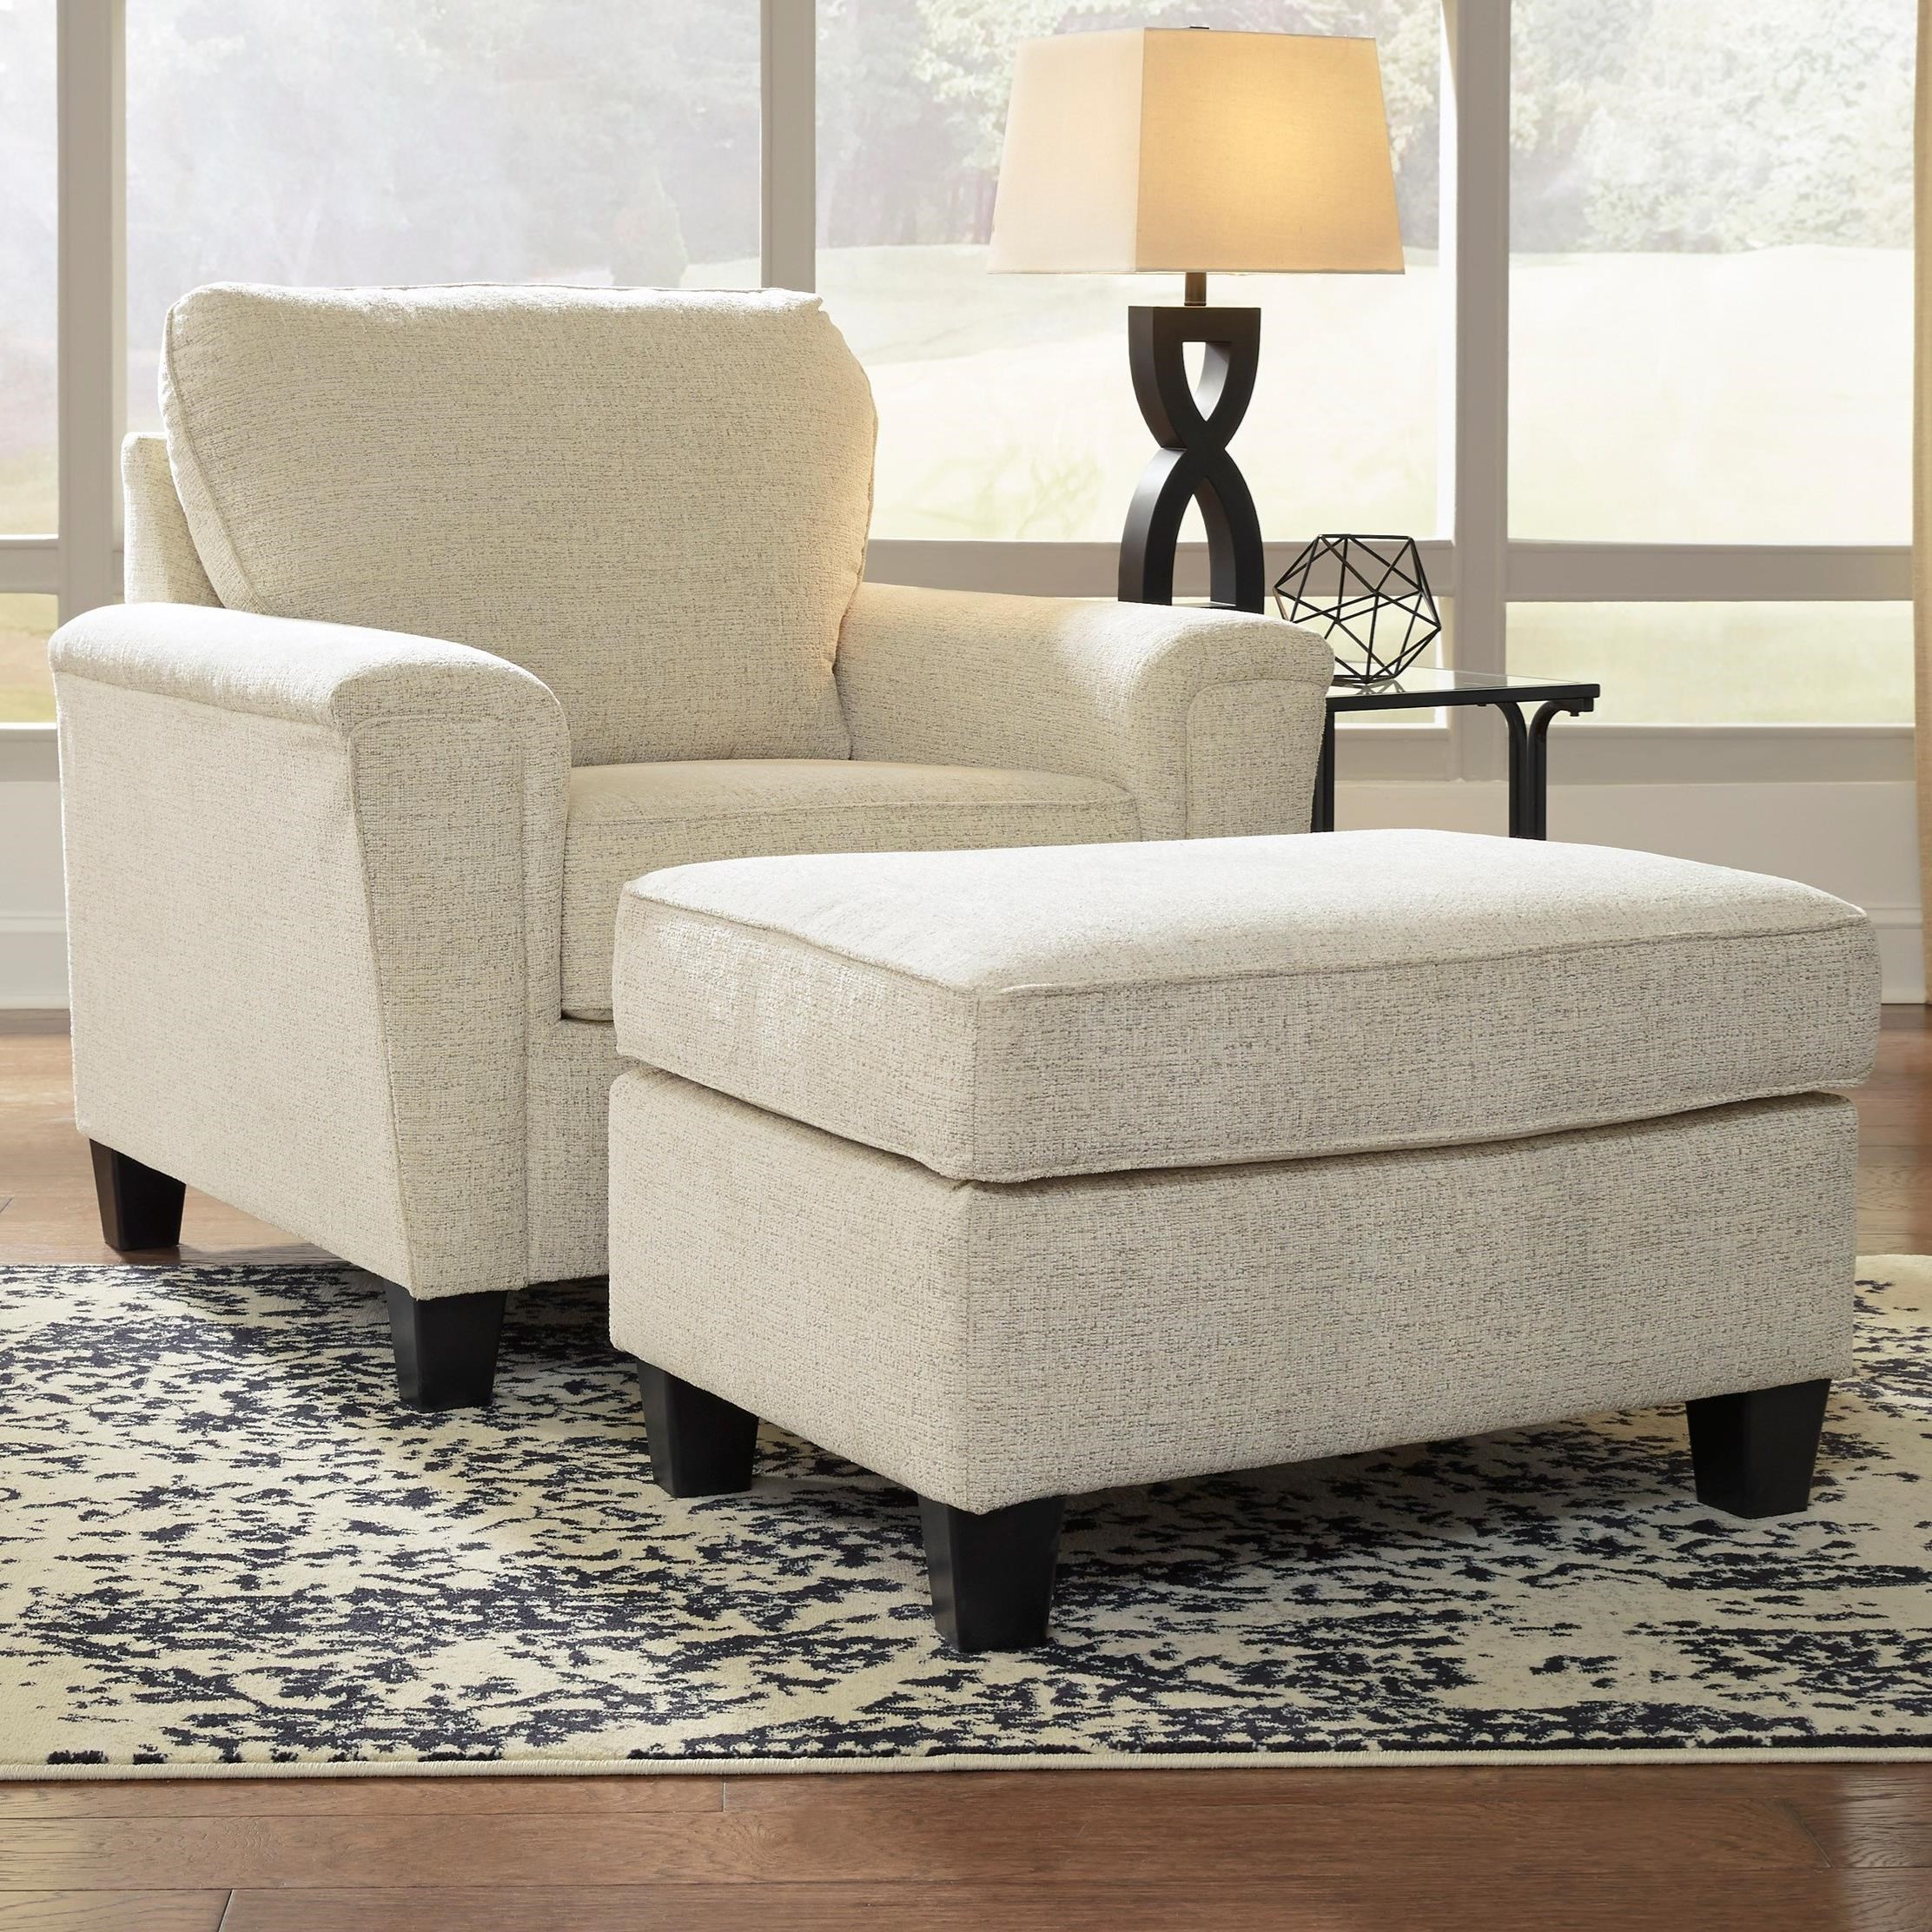 Abinger Chair & Ottoman by Signature Design by Ashley at Lynn's Furniture & Mattress